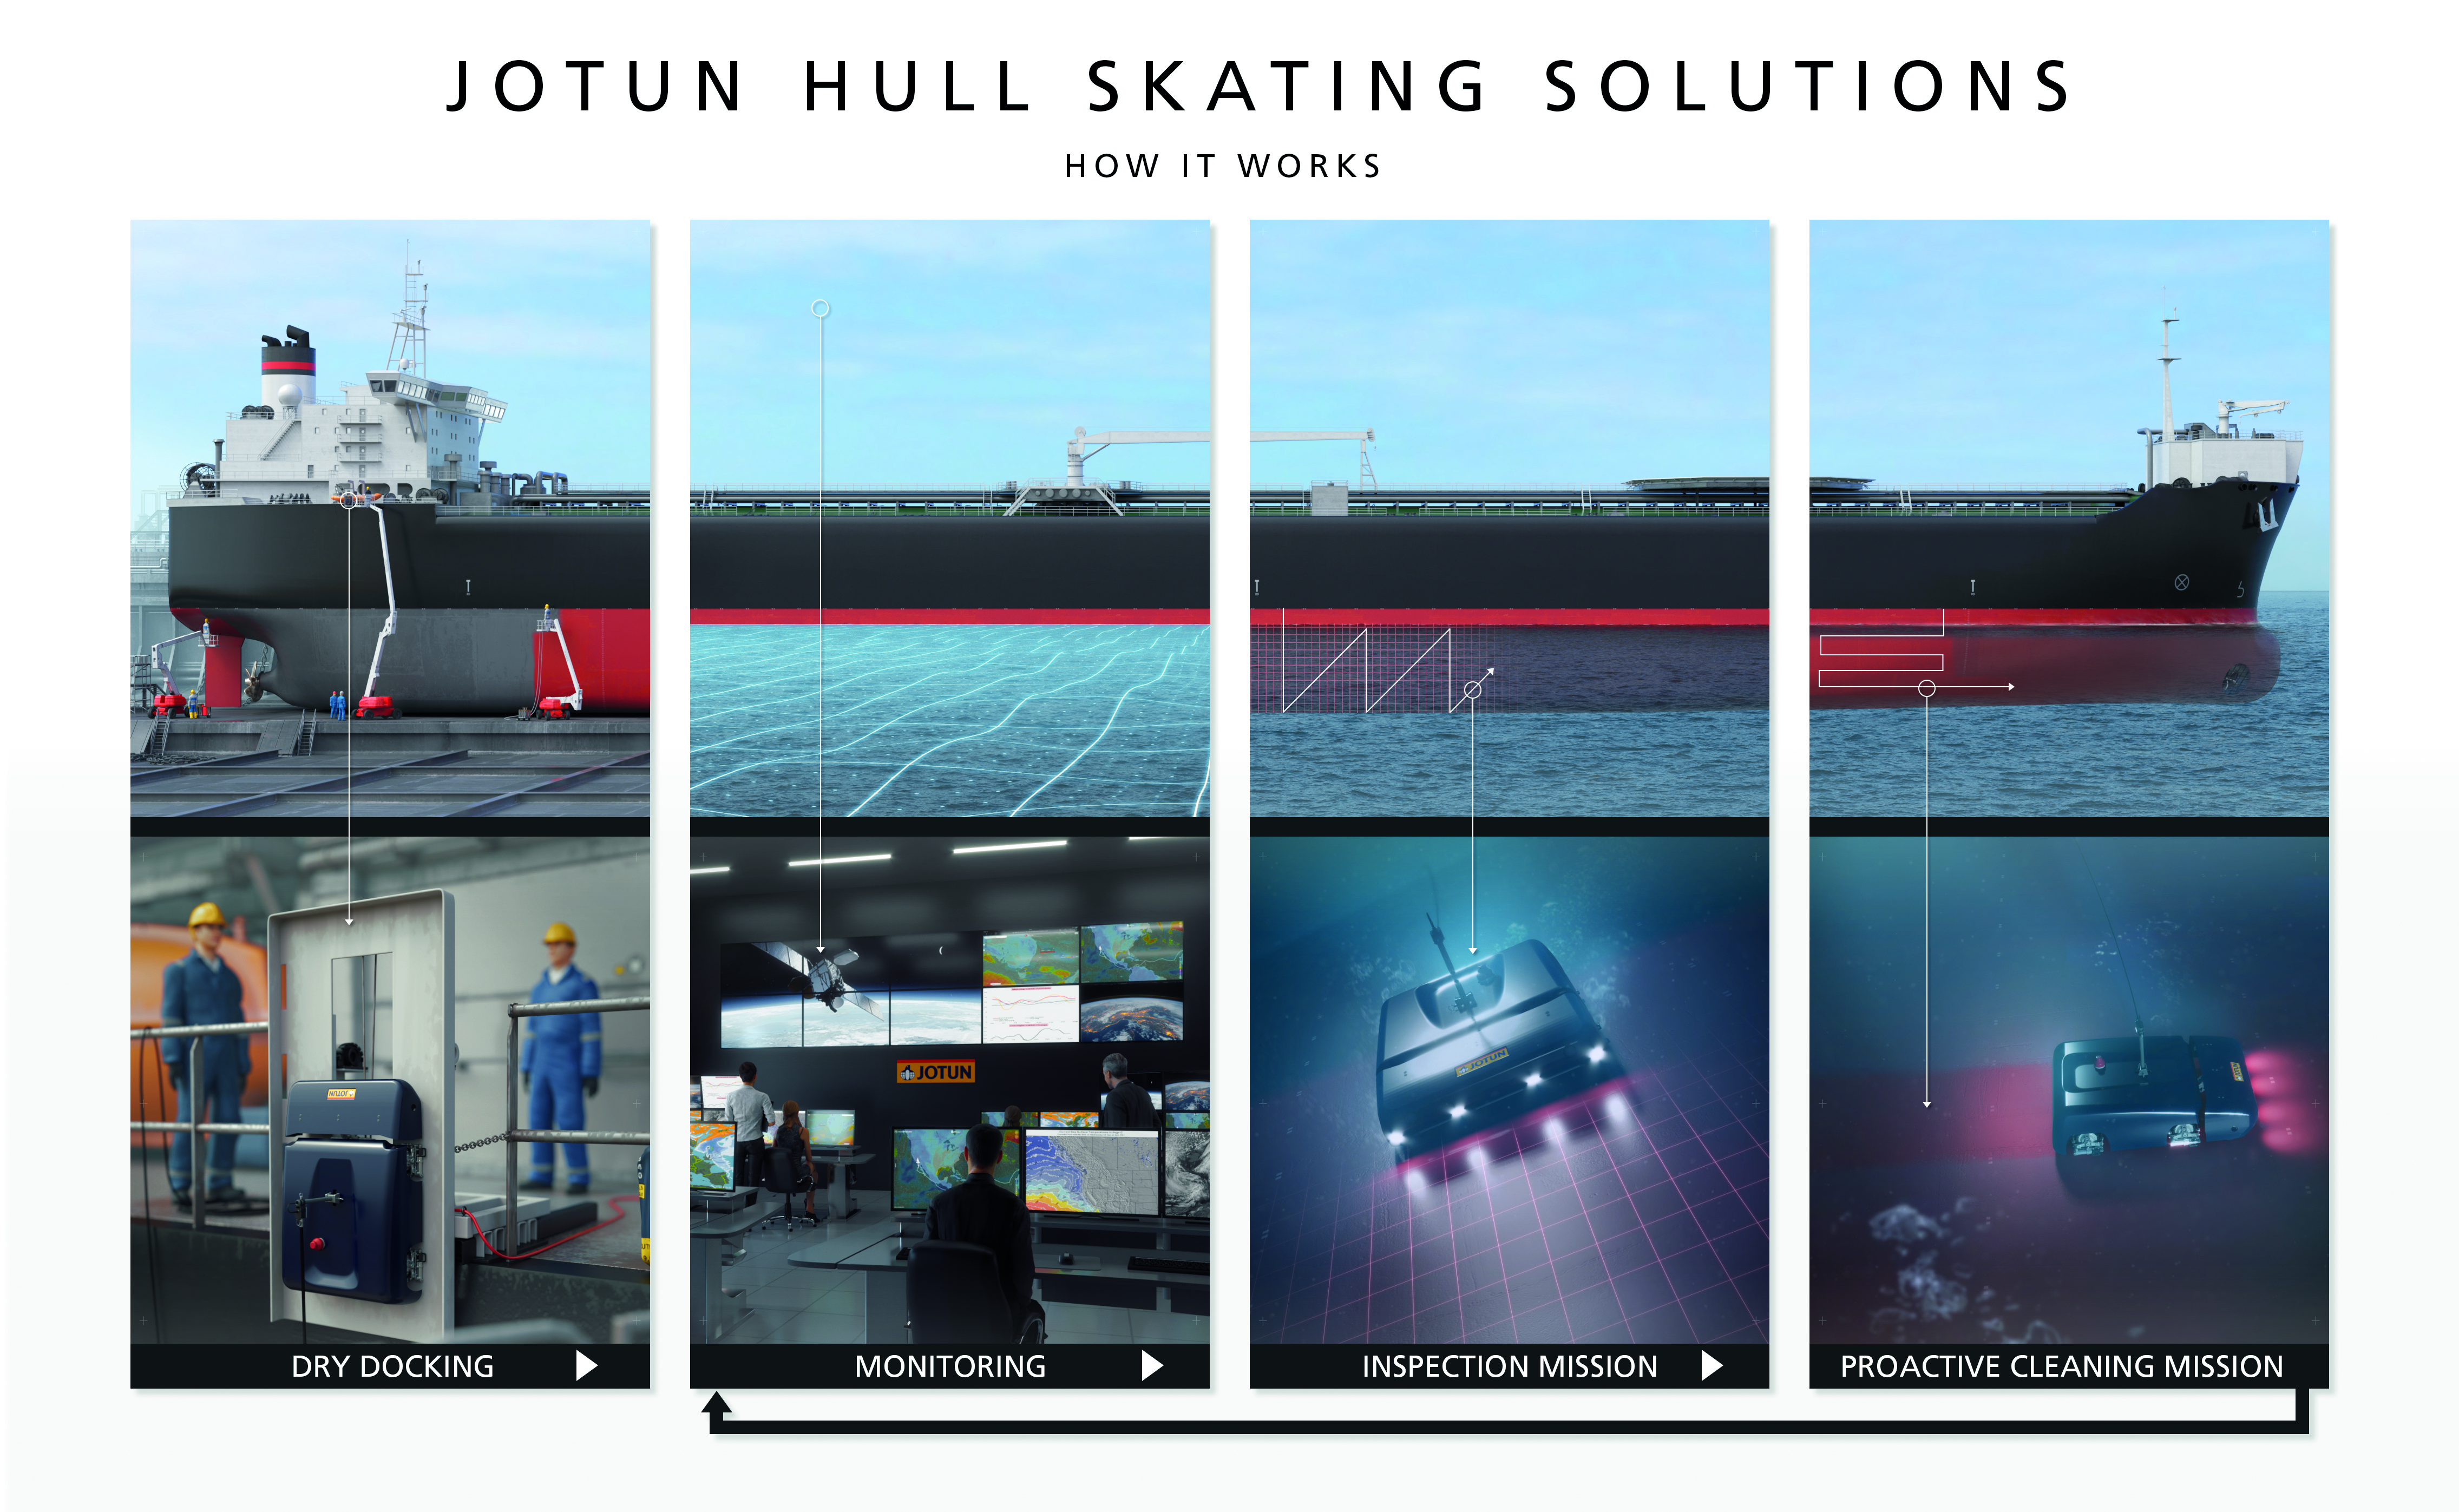 Hull skater how does it work